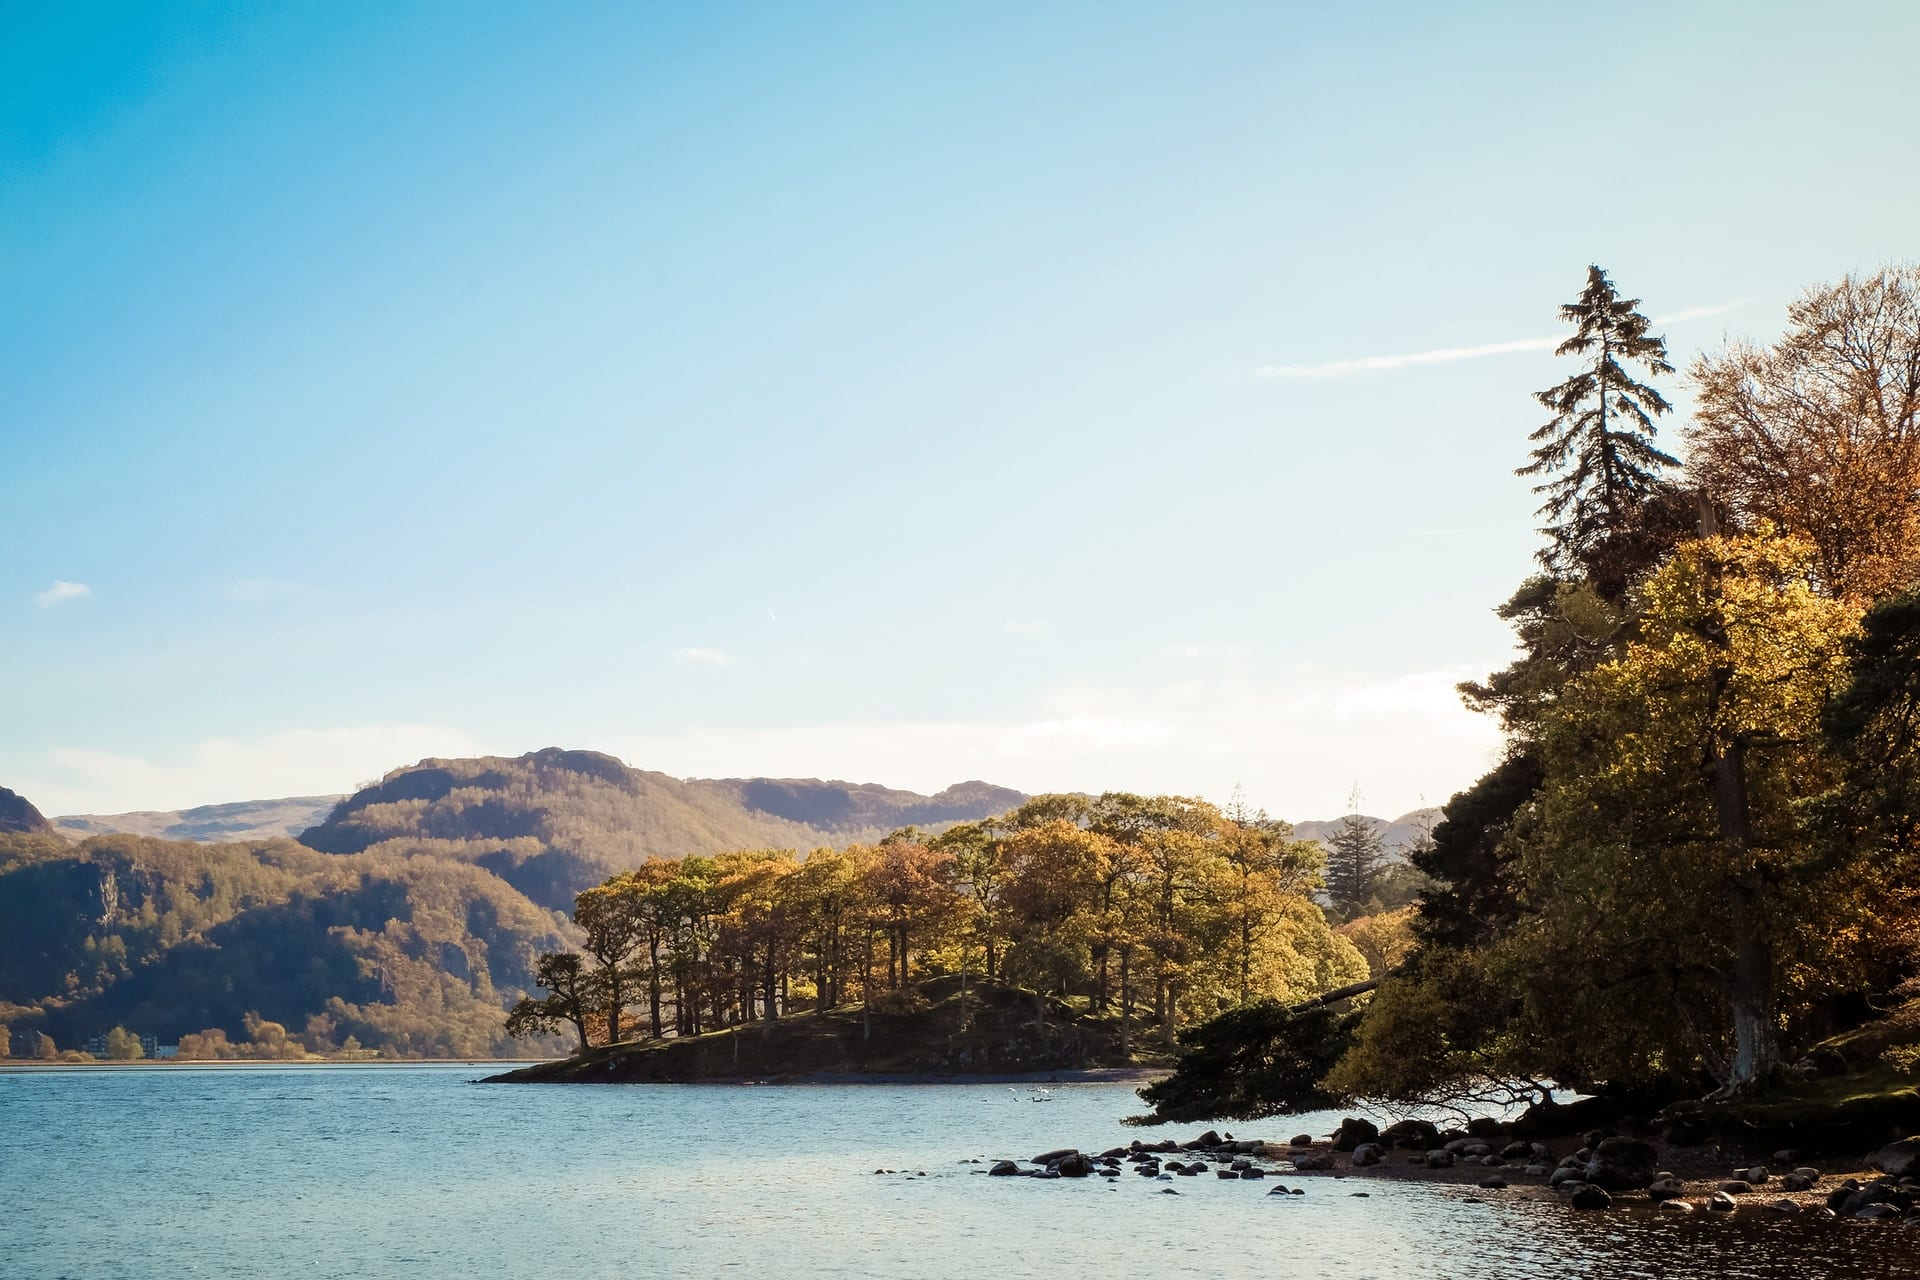 trees-and-mountains-surrounding-lake-with-blue-skies-lake-district-day-trips-from-manchester